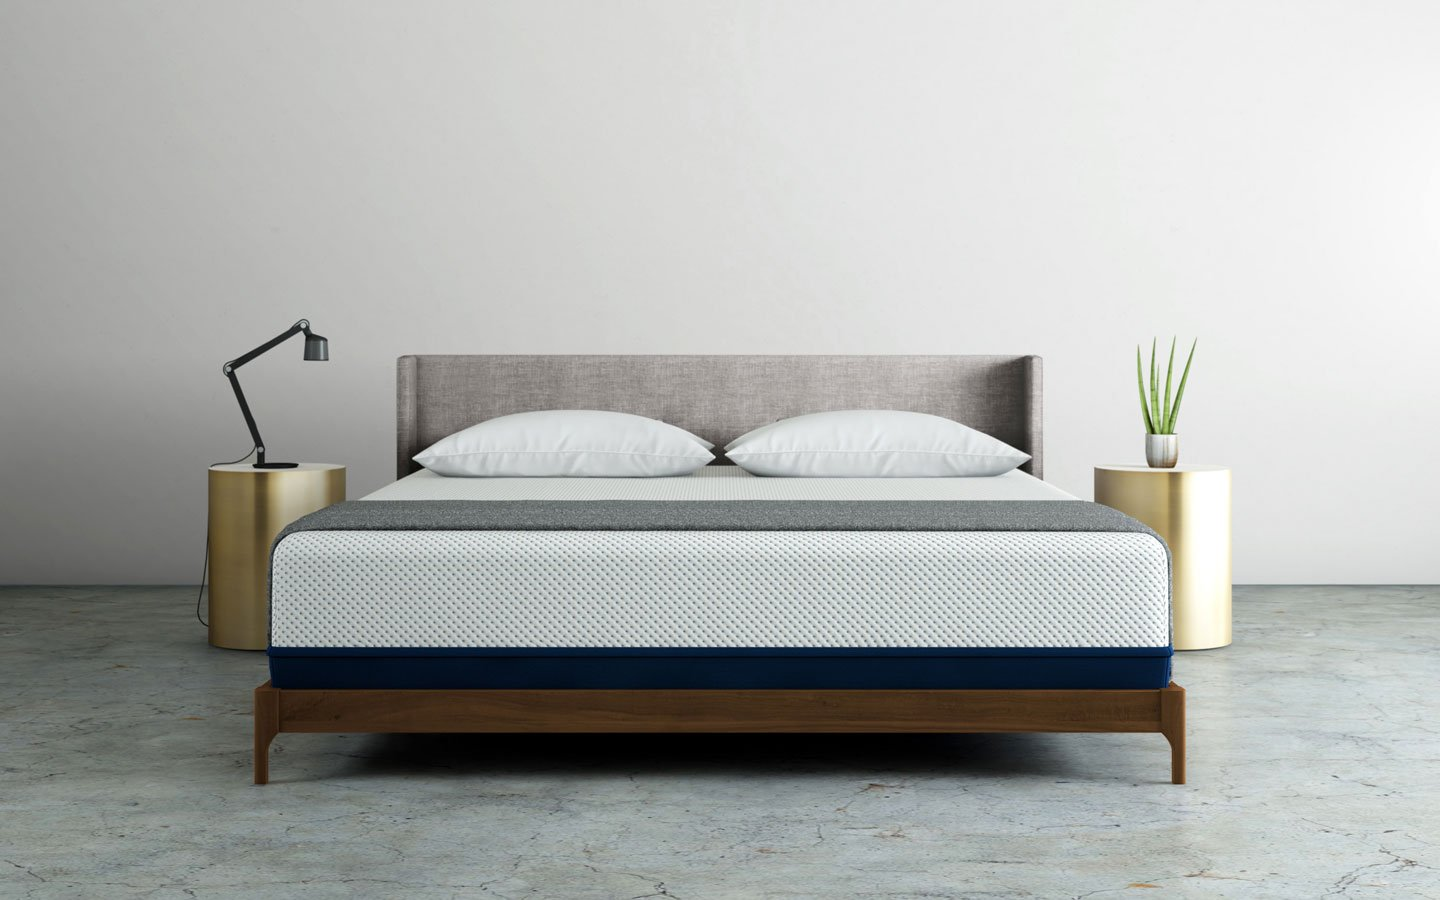 Amerisleep Mattress Reviews and Buying Guide by www.snoremagazine.com